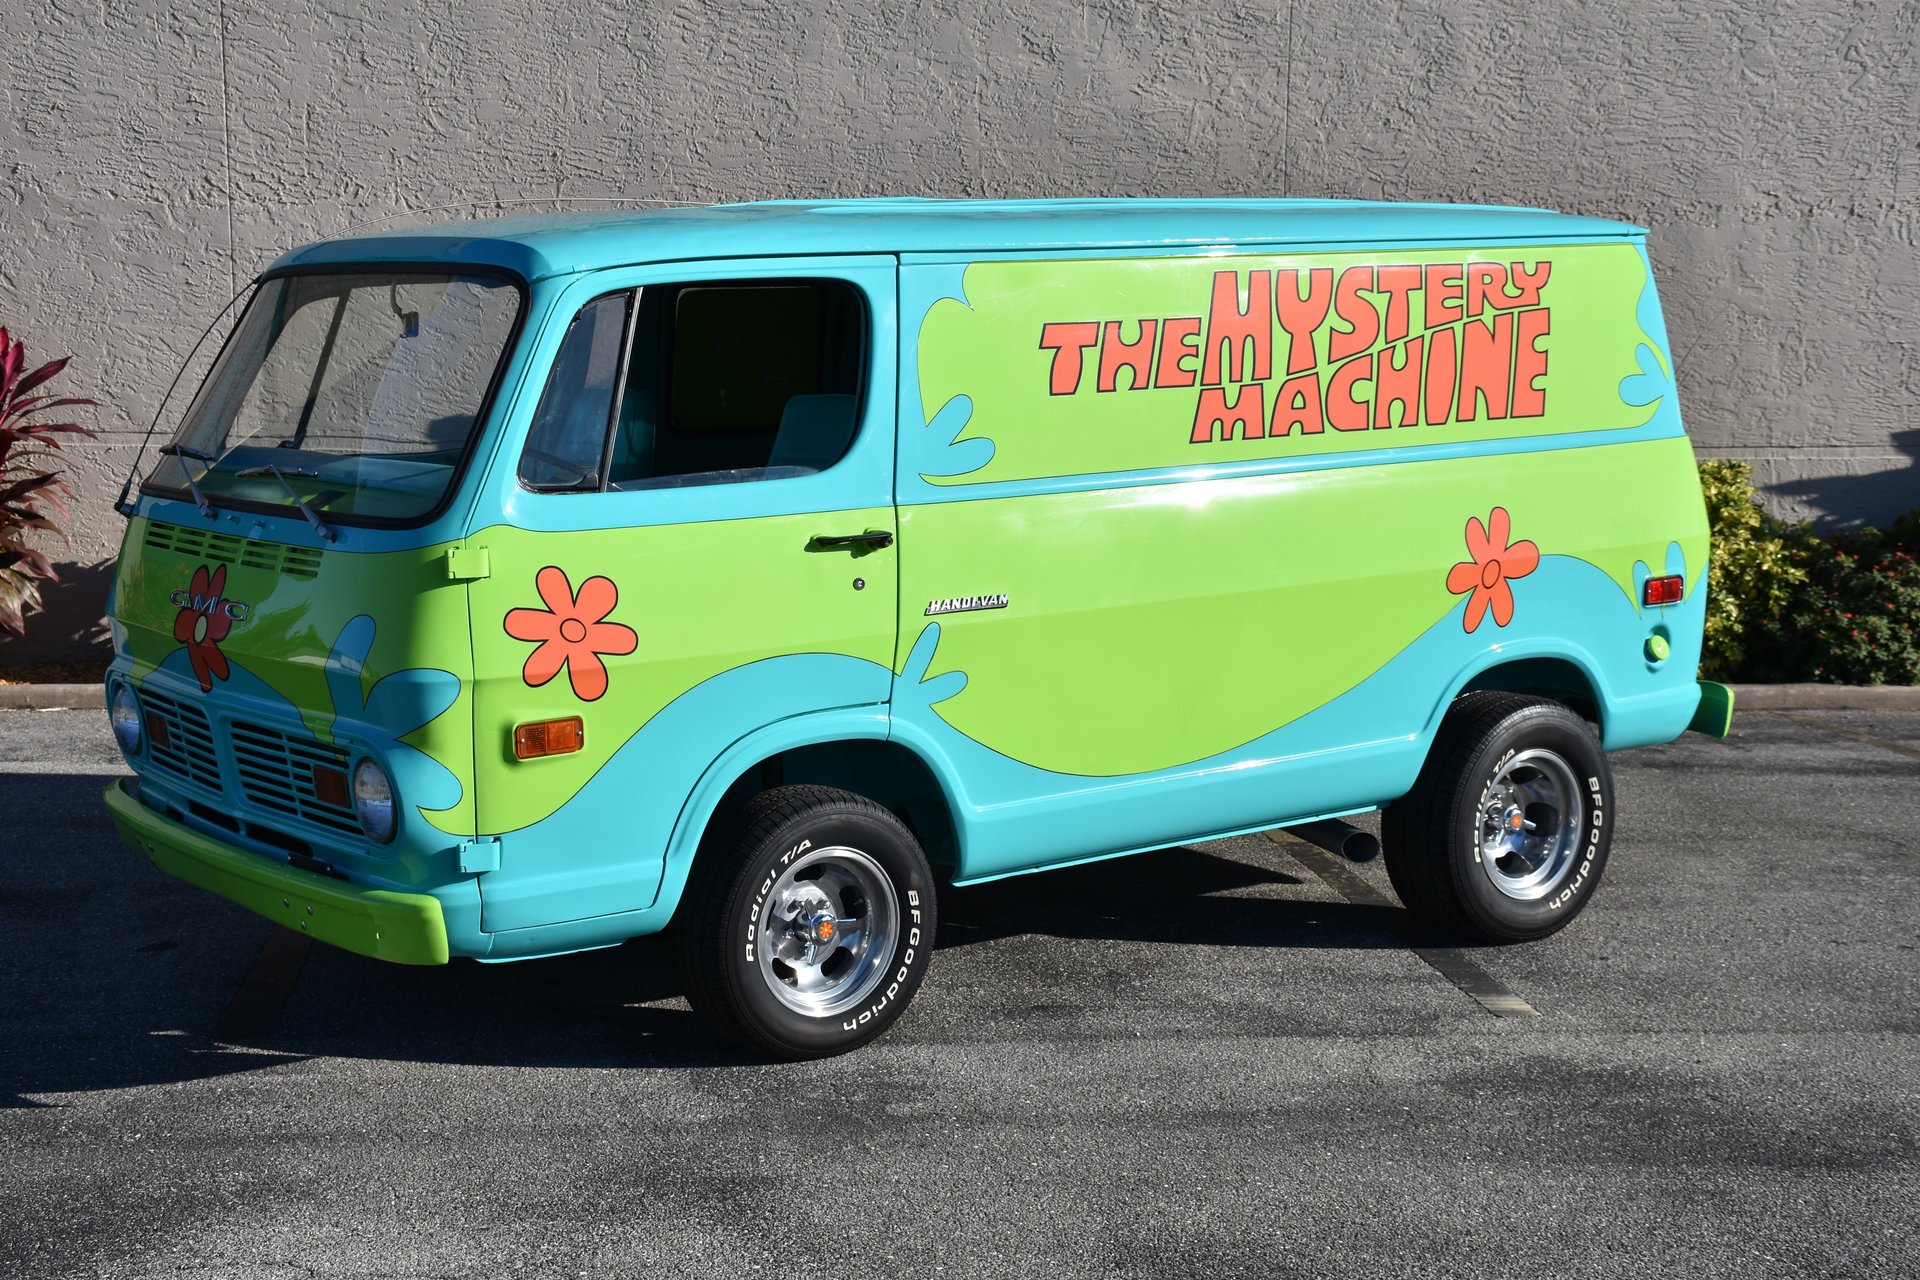 1215751a79702 hd 1969 z movie car scooby doo mystery machine